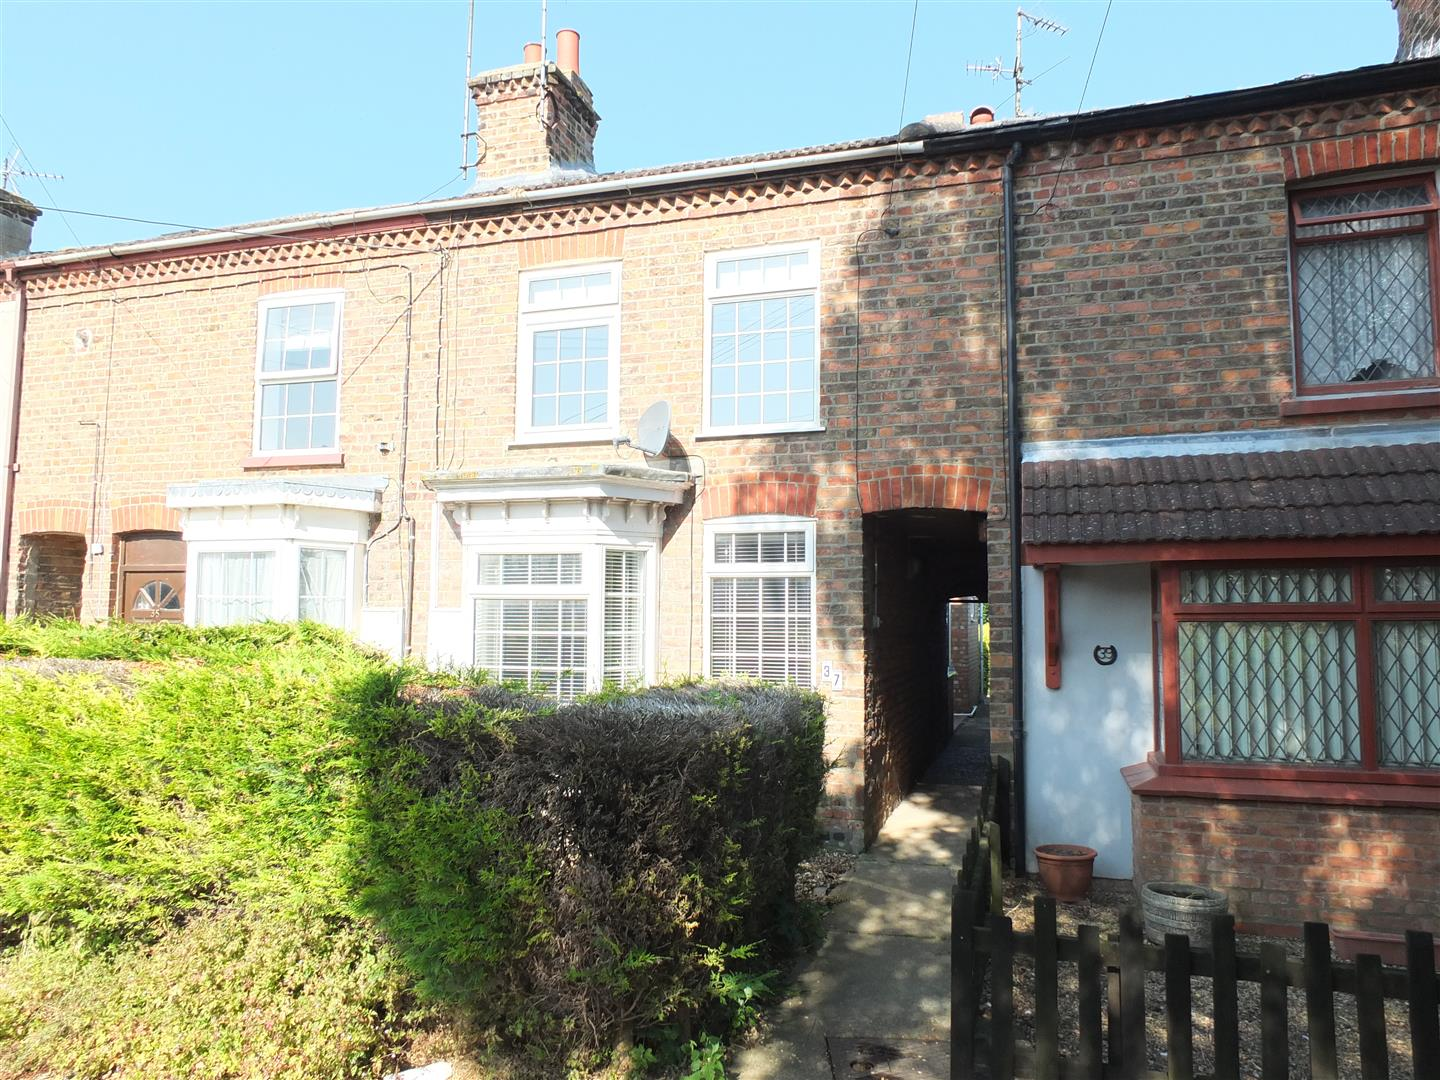 2 bed terraced house to rent in Sutton Bridge Spalding, PE12 9SX, PE12